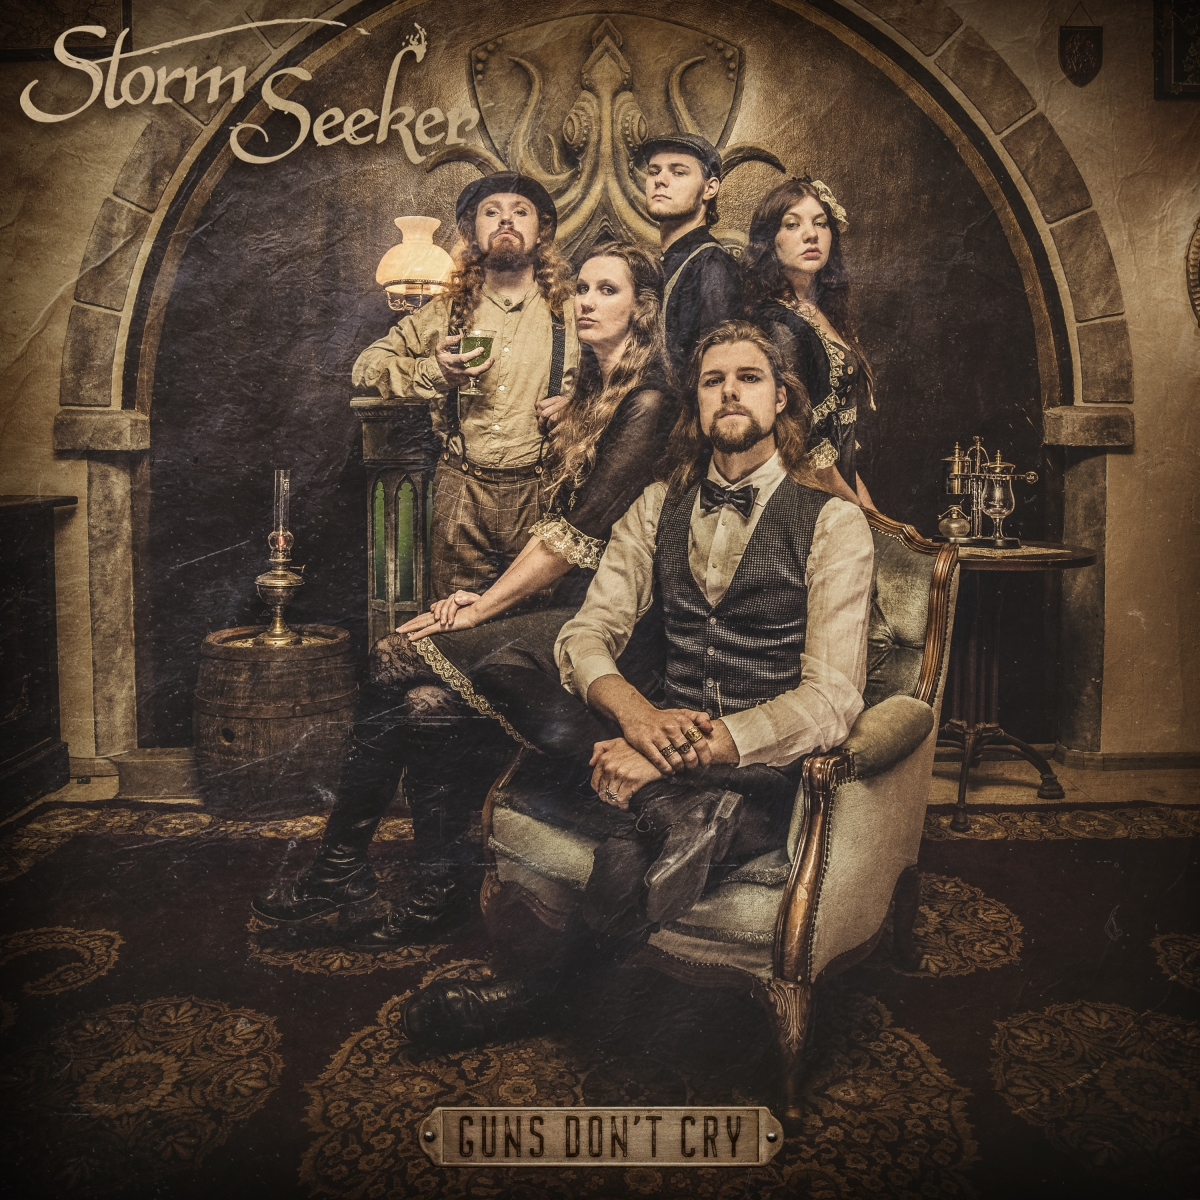 storm seeker - guns dont cry - album cover